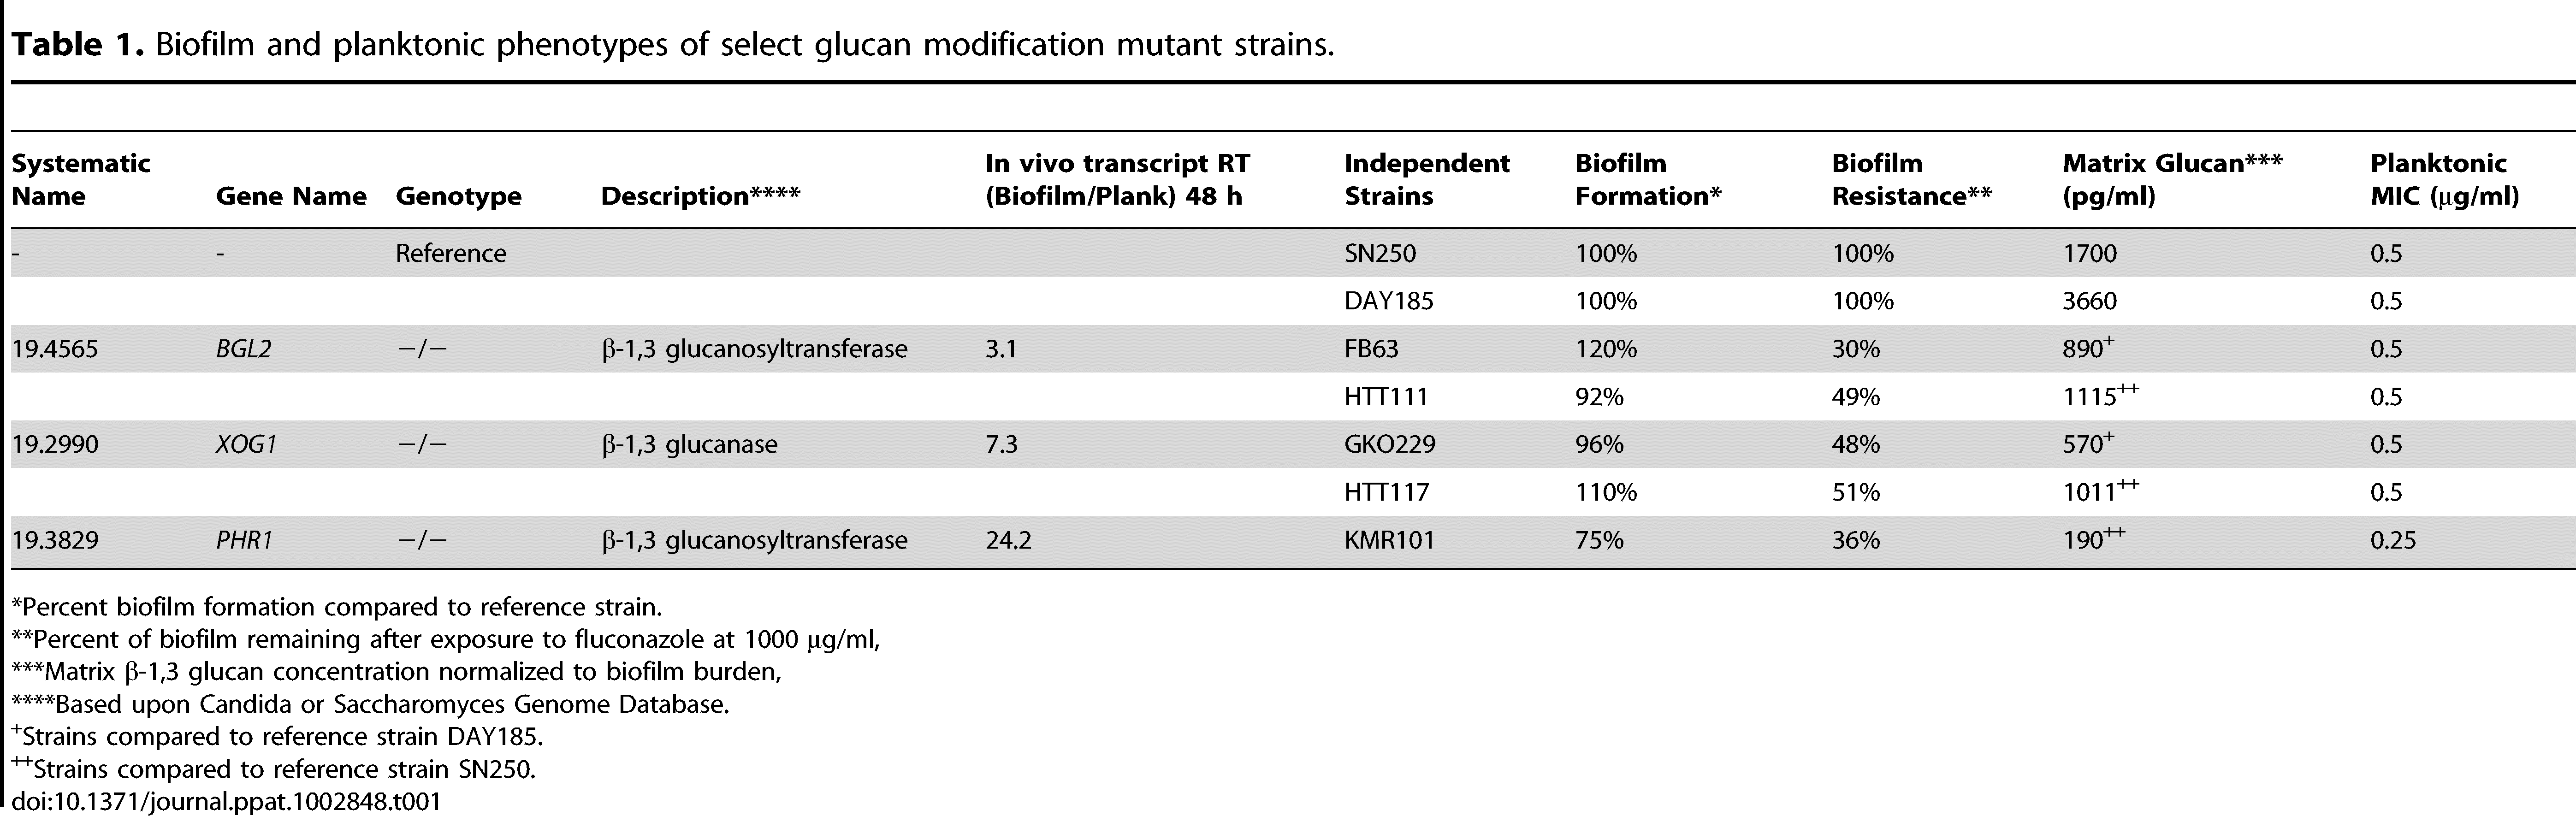 Biofilm and planktonic phenotypes of select glucan modification mutant strains.